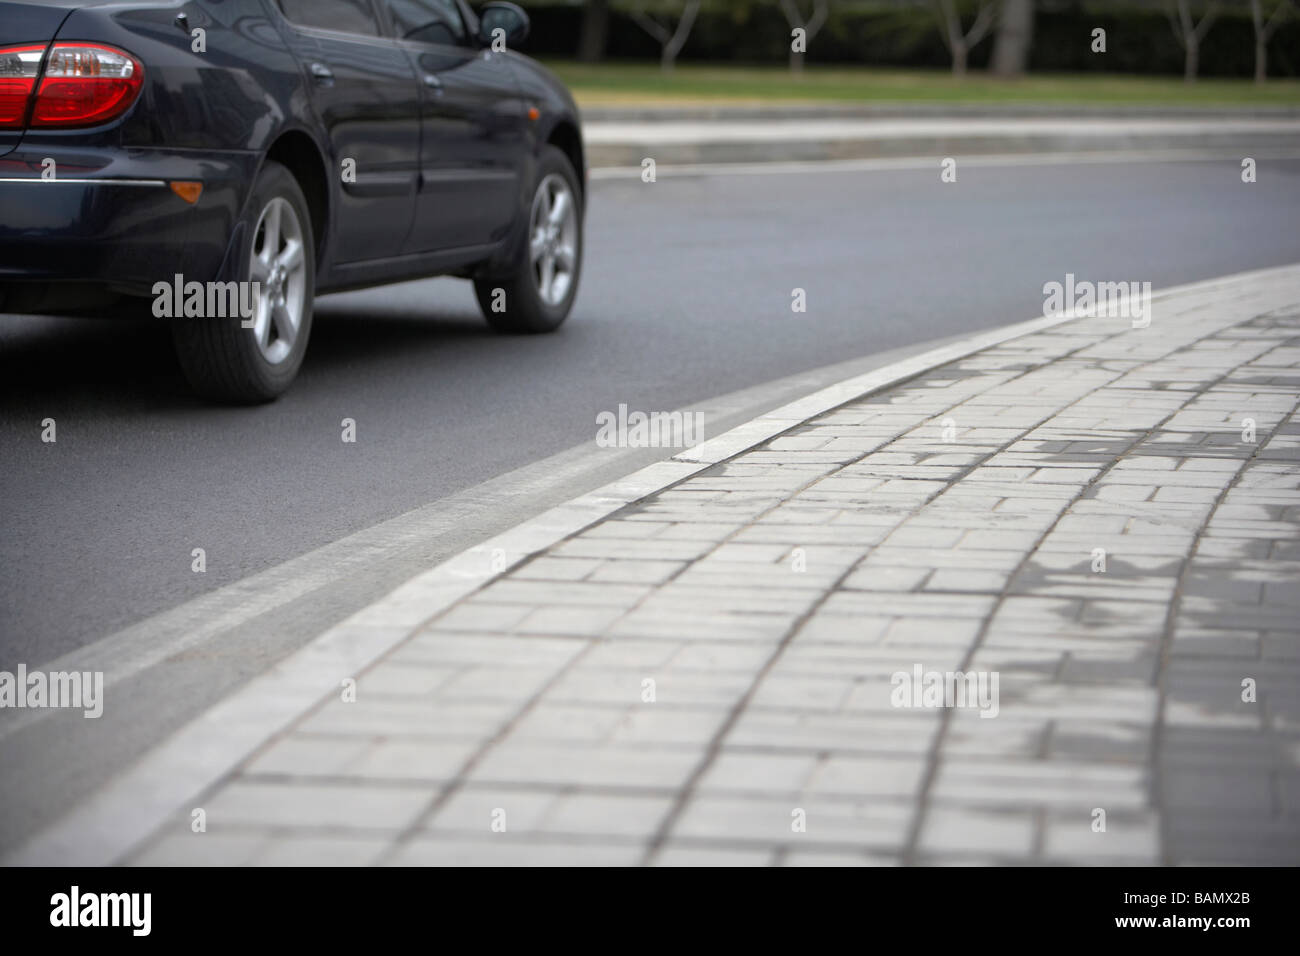 Low Angle View Of  A Concrete Block Pavement  With A Car Driving Past Stock Photo